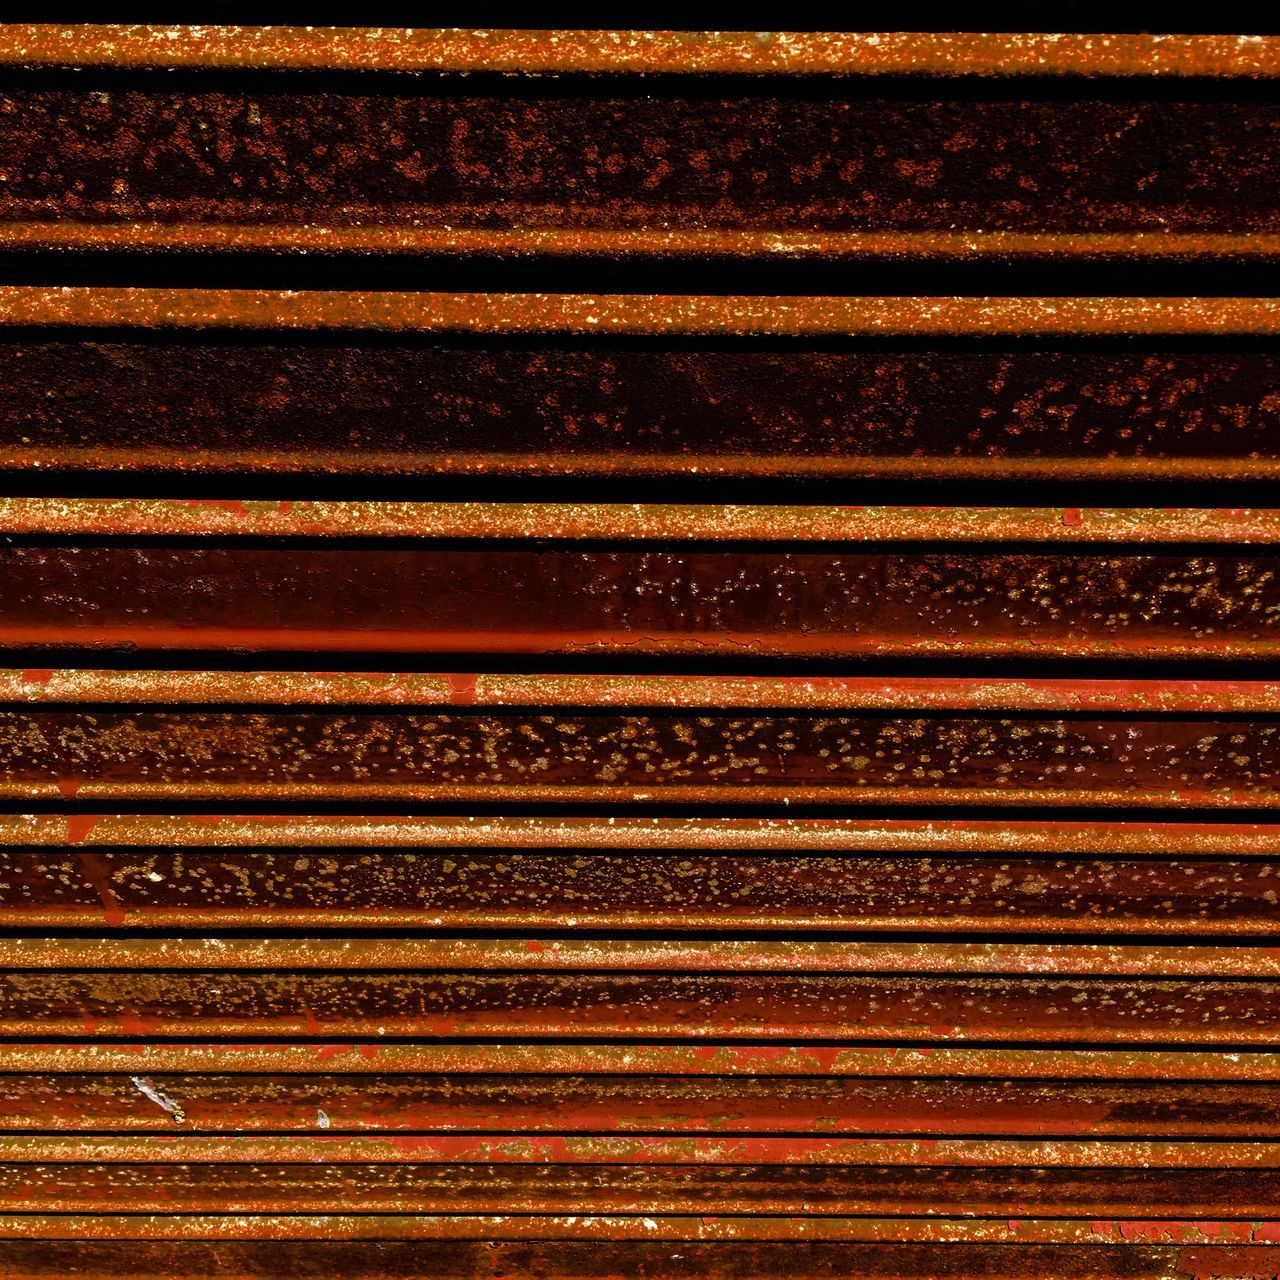 backgrounds, pattern, brown, textured, rusty, abstract, full frame, no people, close-up, day